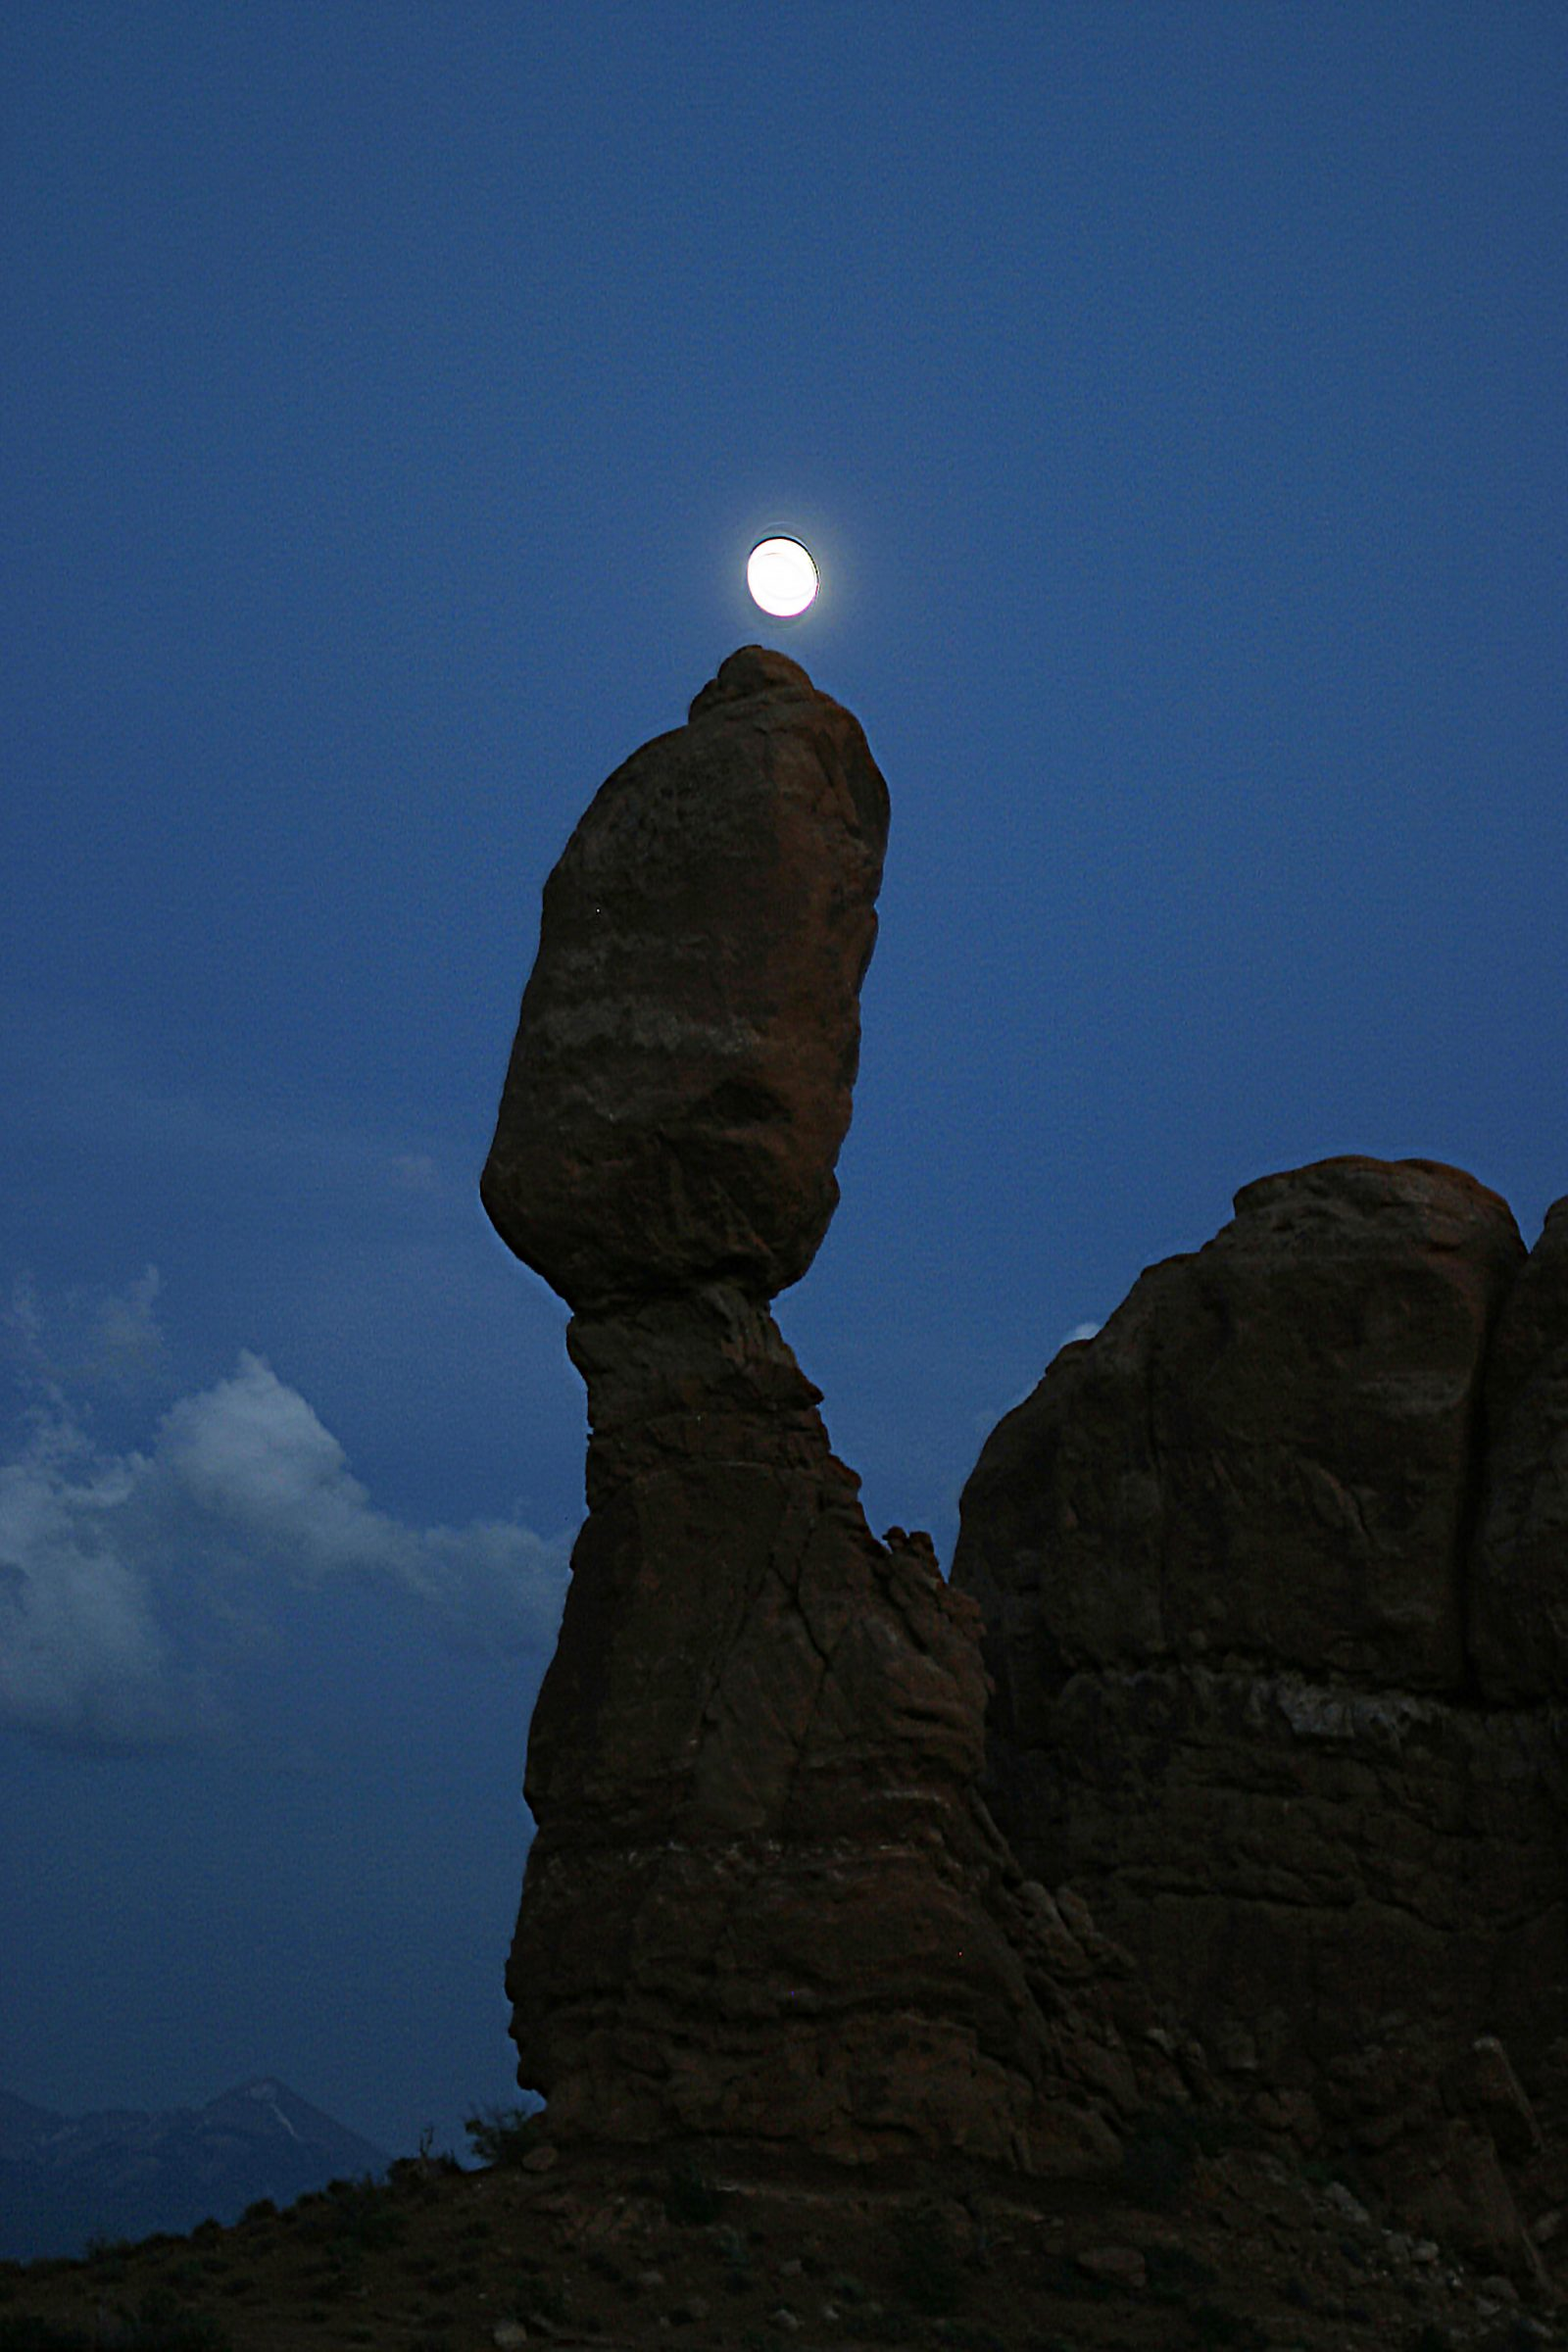 Moon sits upon balanced rock